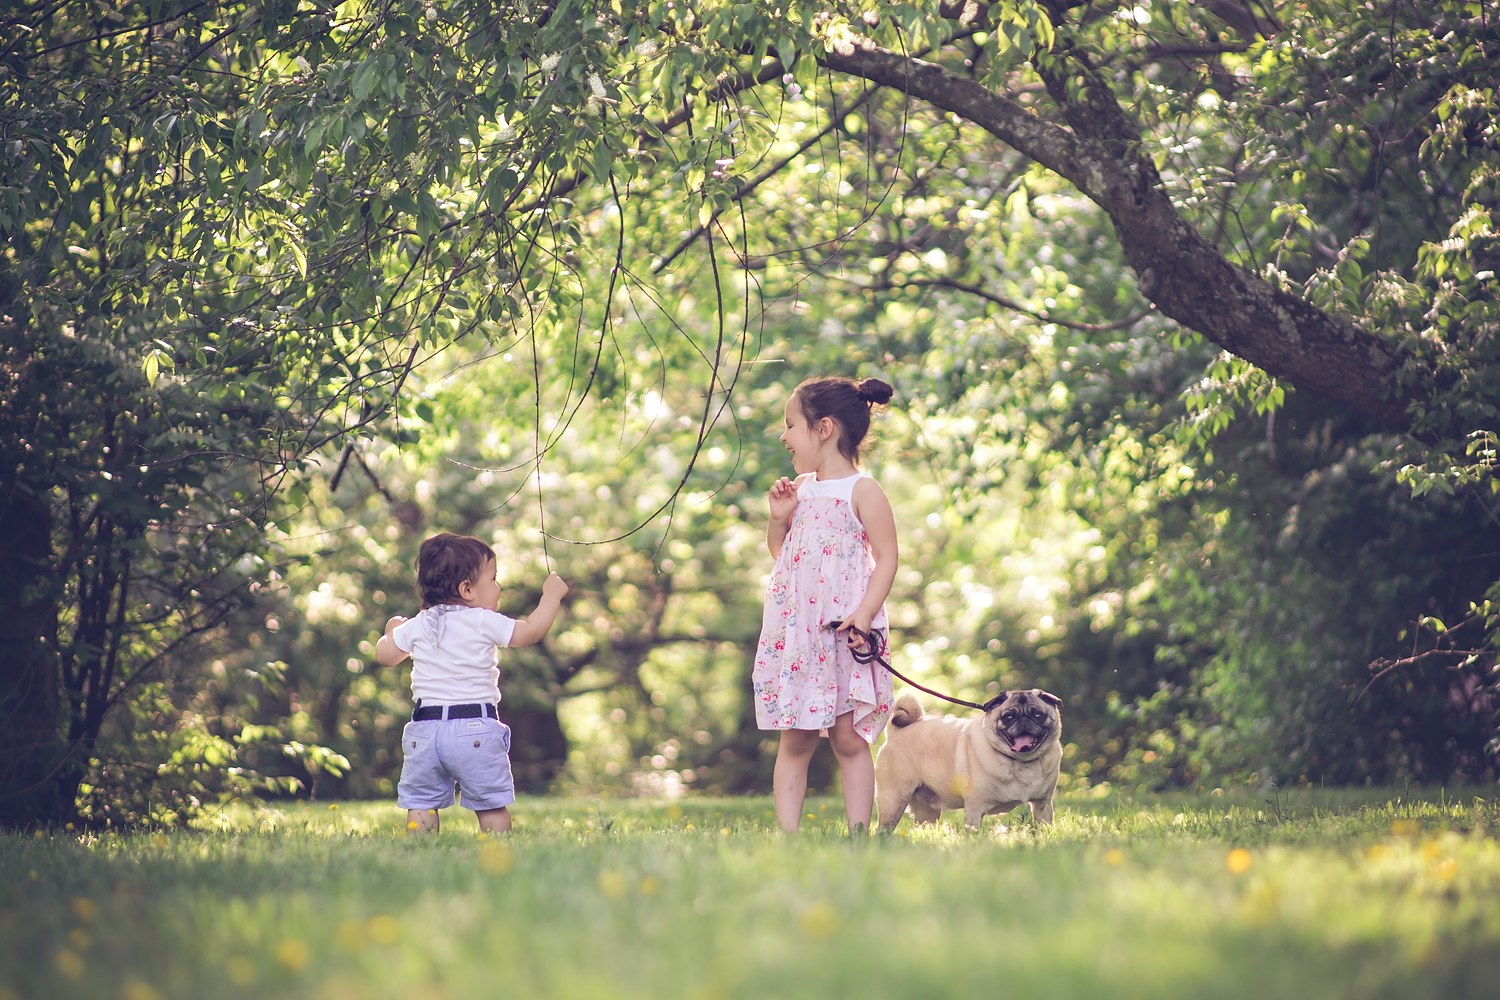 baby with pet pug dog   Tonya Teran Photography - Rockville, MD Newborn Baby and Family Photography